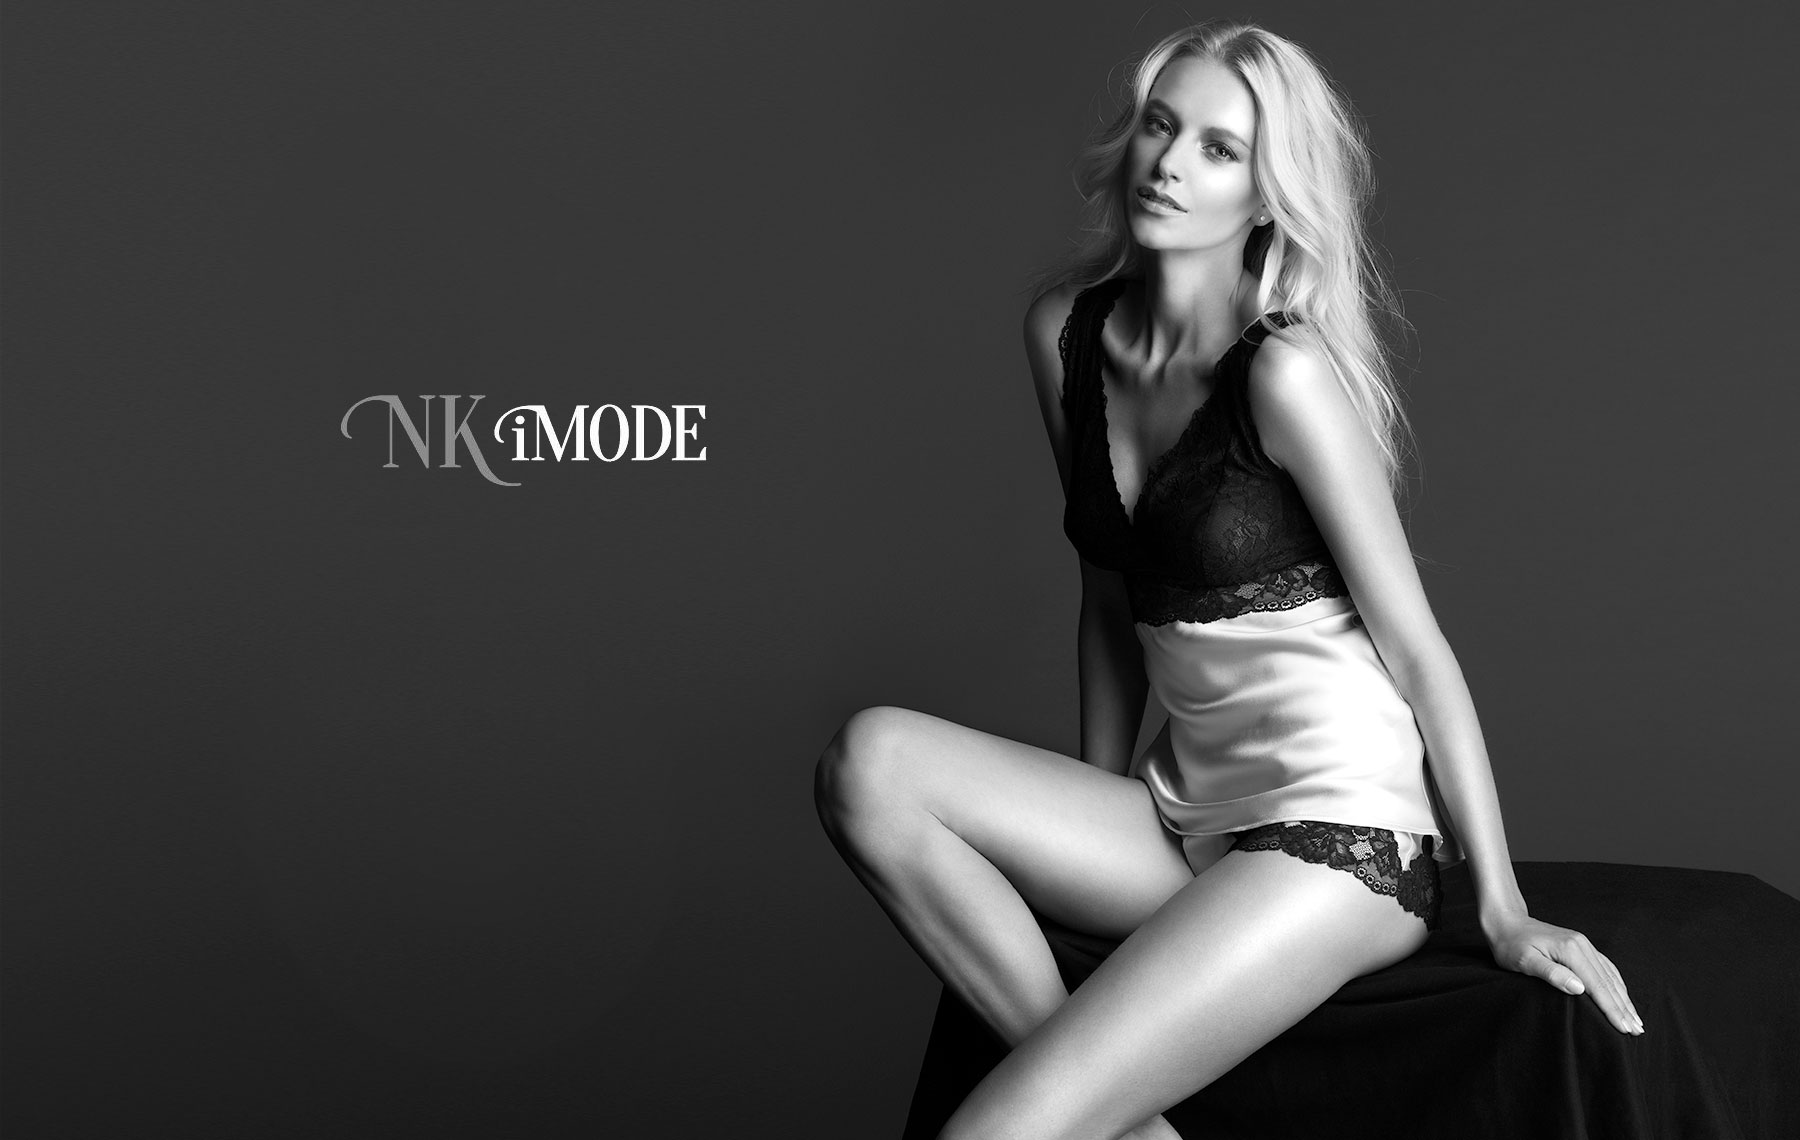 David_Fierro_Fashion_Photographer_NKiMode_Lingerie_Advertising_2